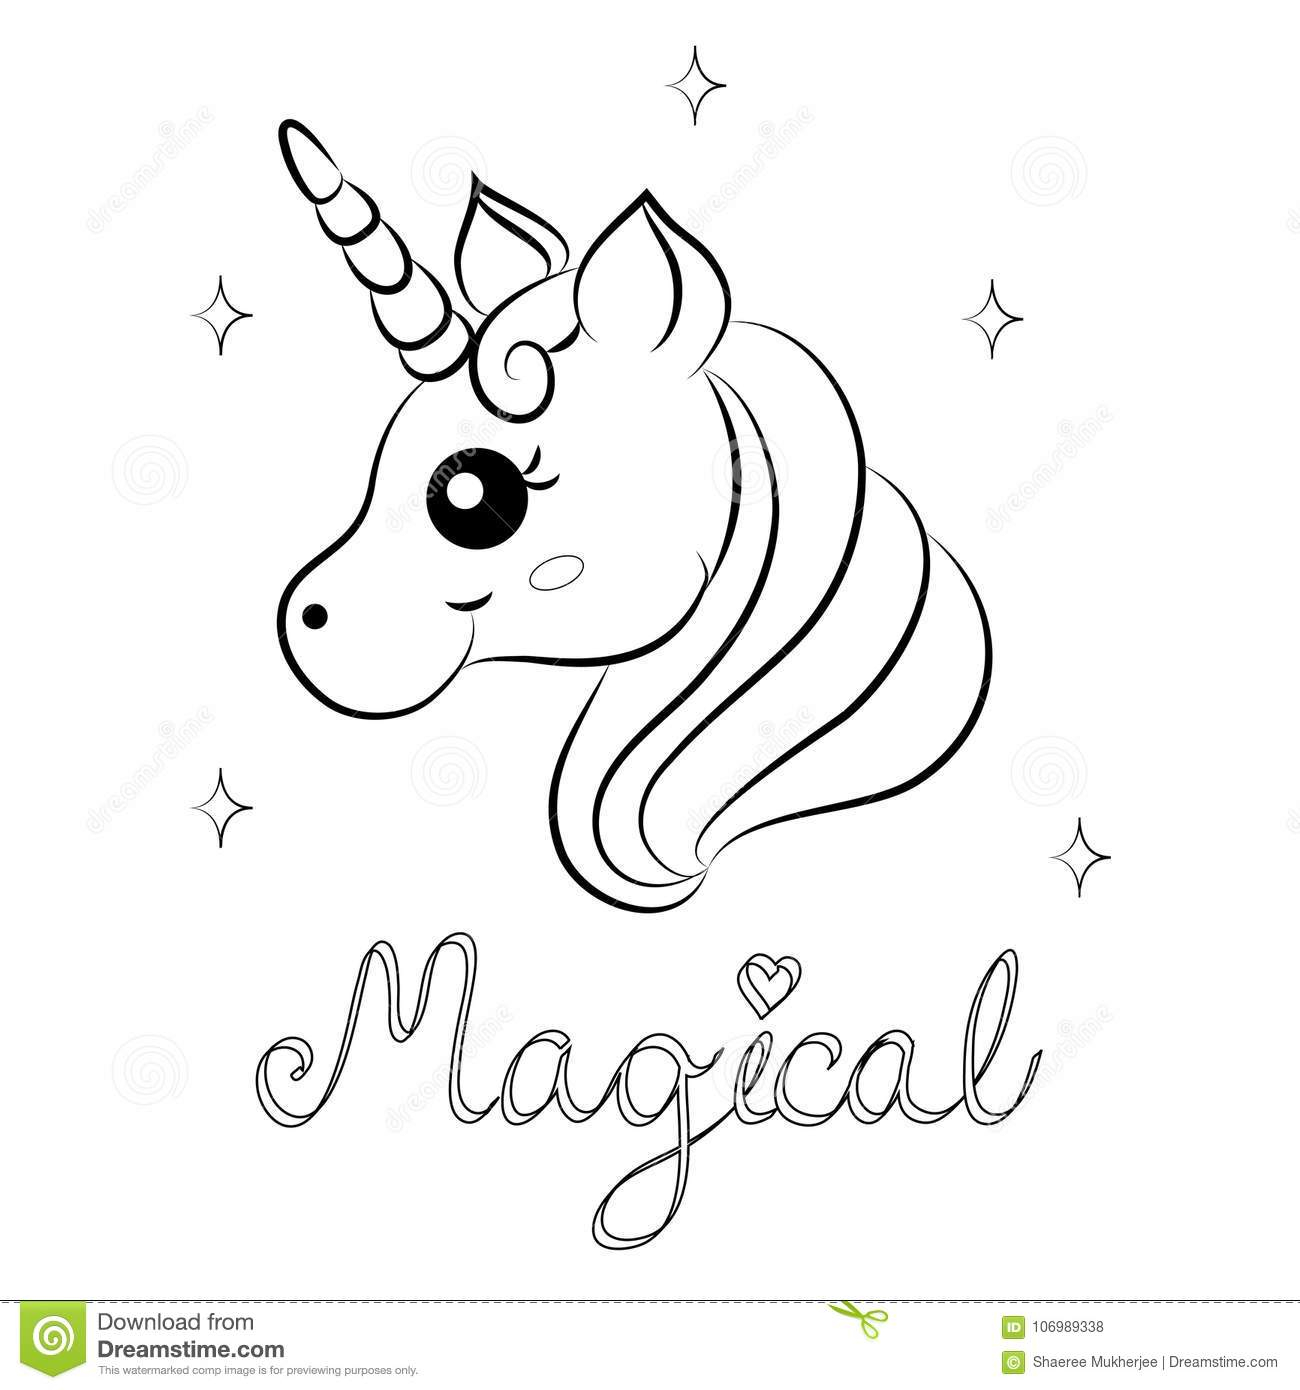 Cute Unicorn Coloring Pages Coloring Pages Coloring Pages Magical Unicorn Awesome Cute Cartoon